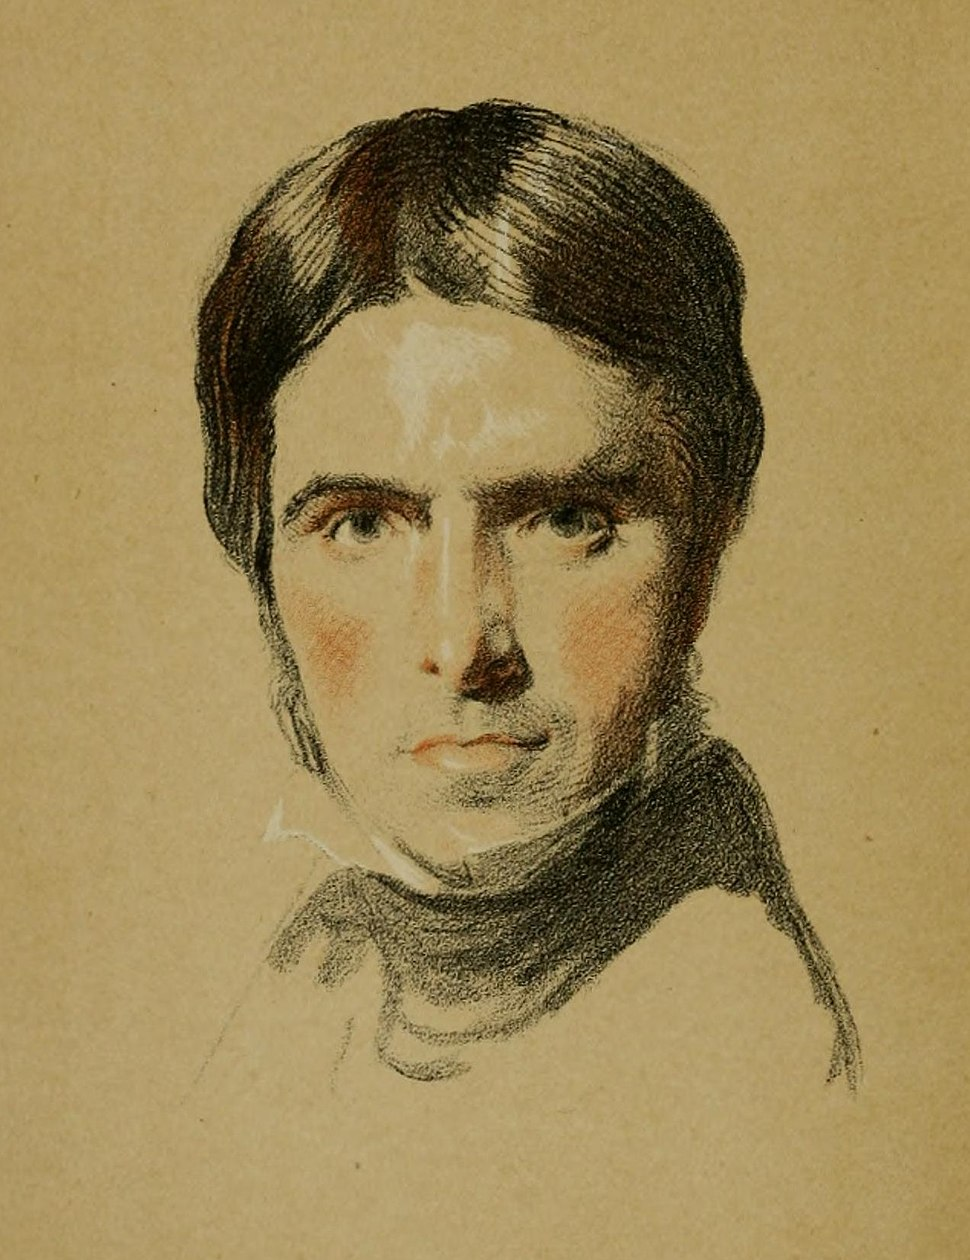 Water-colour Sketch of Thomas Carlyle